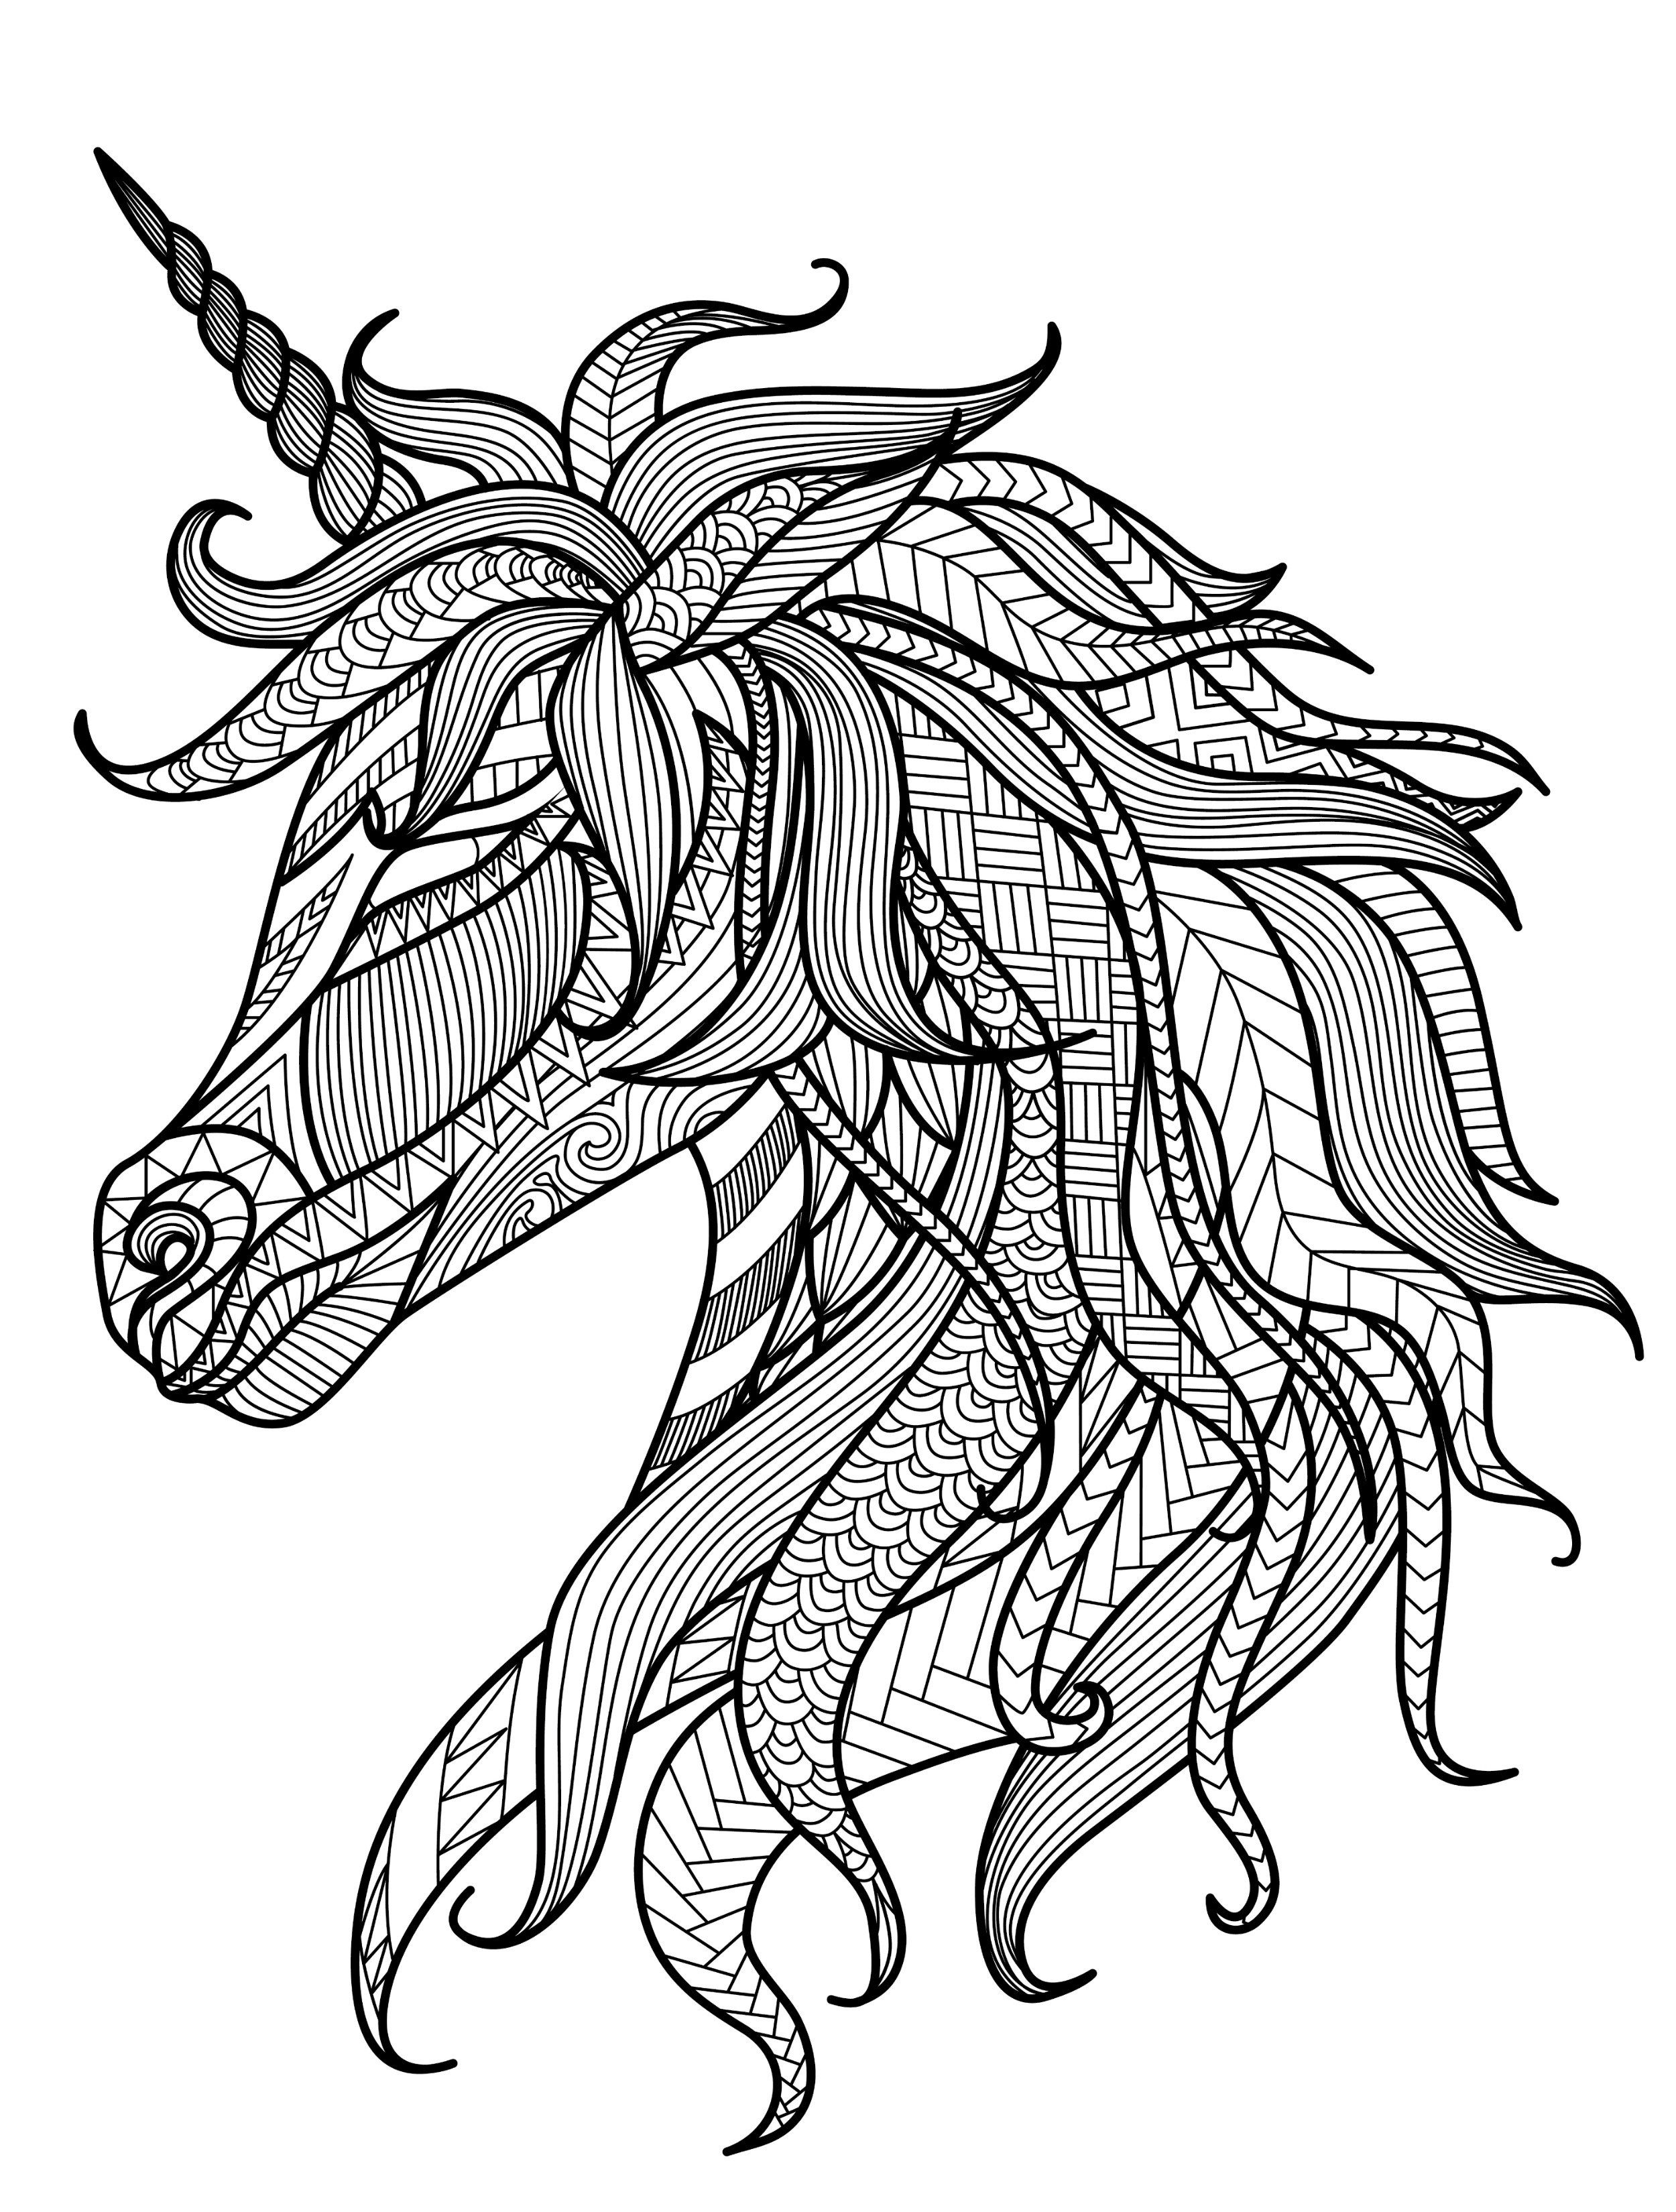 Adult Coloring Page Unicorn : adult, coloring, unicorn, Coloring